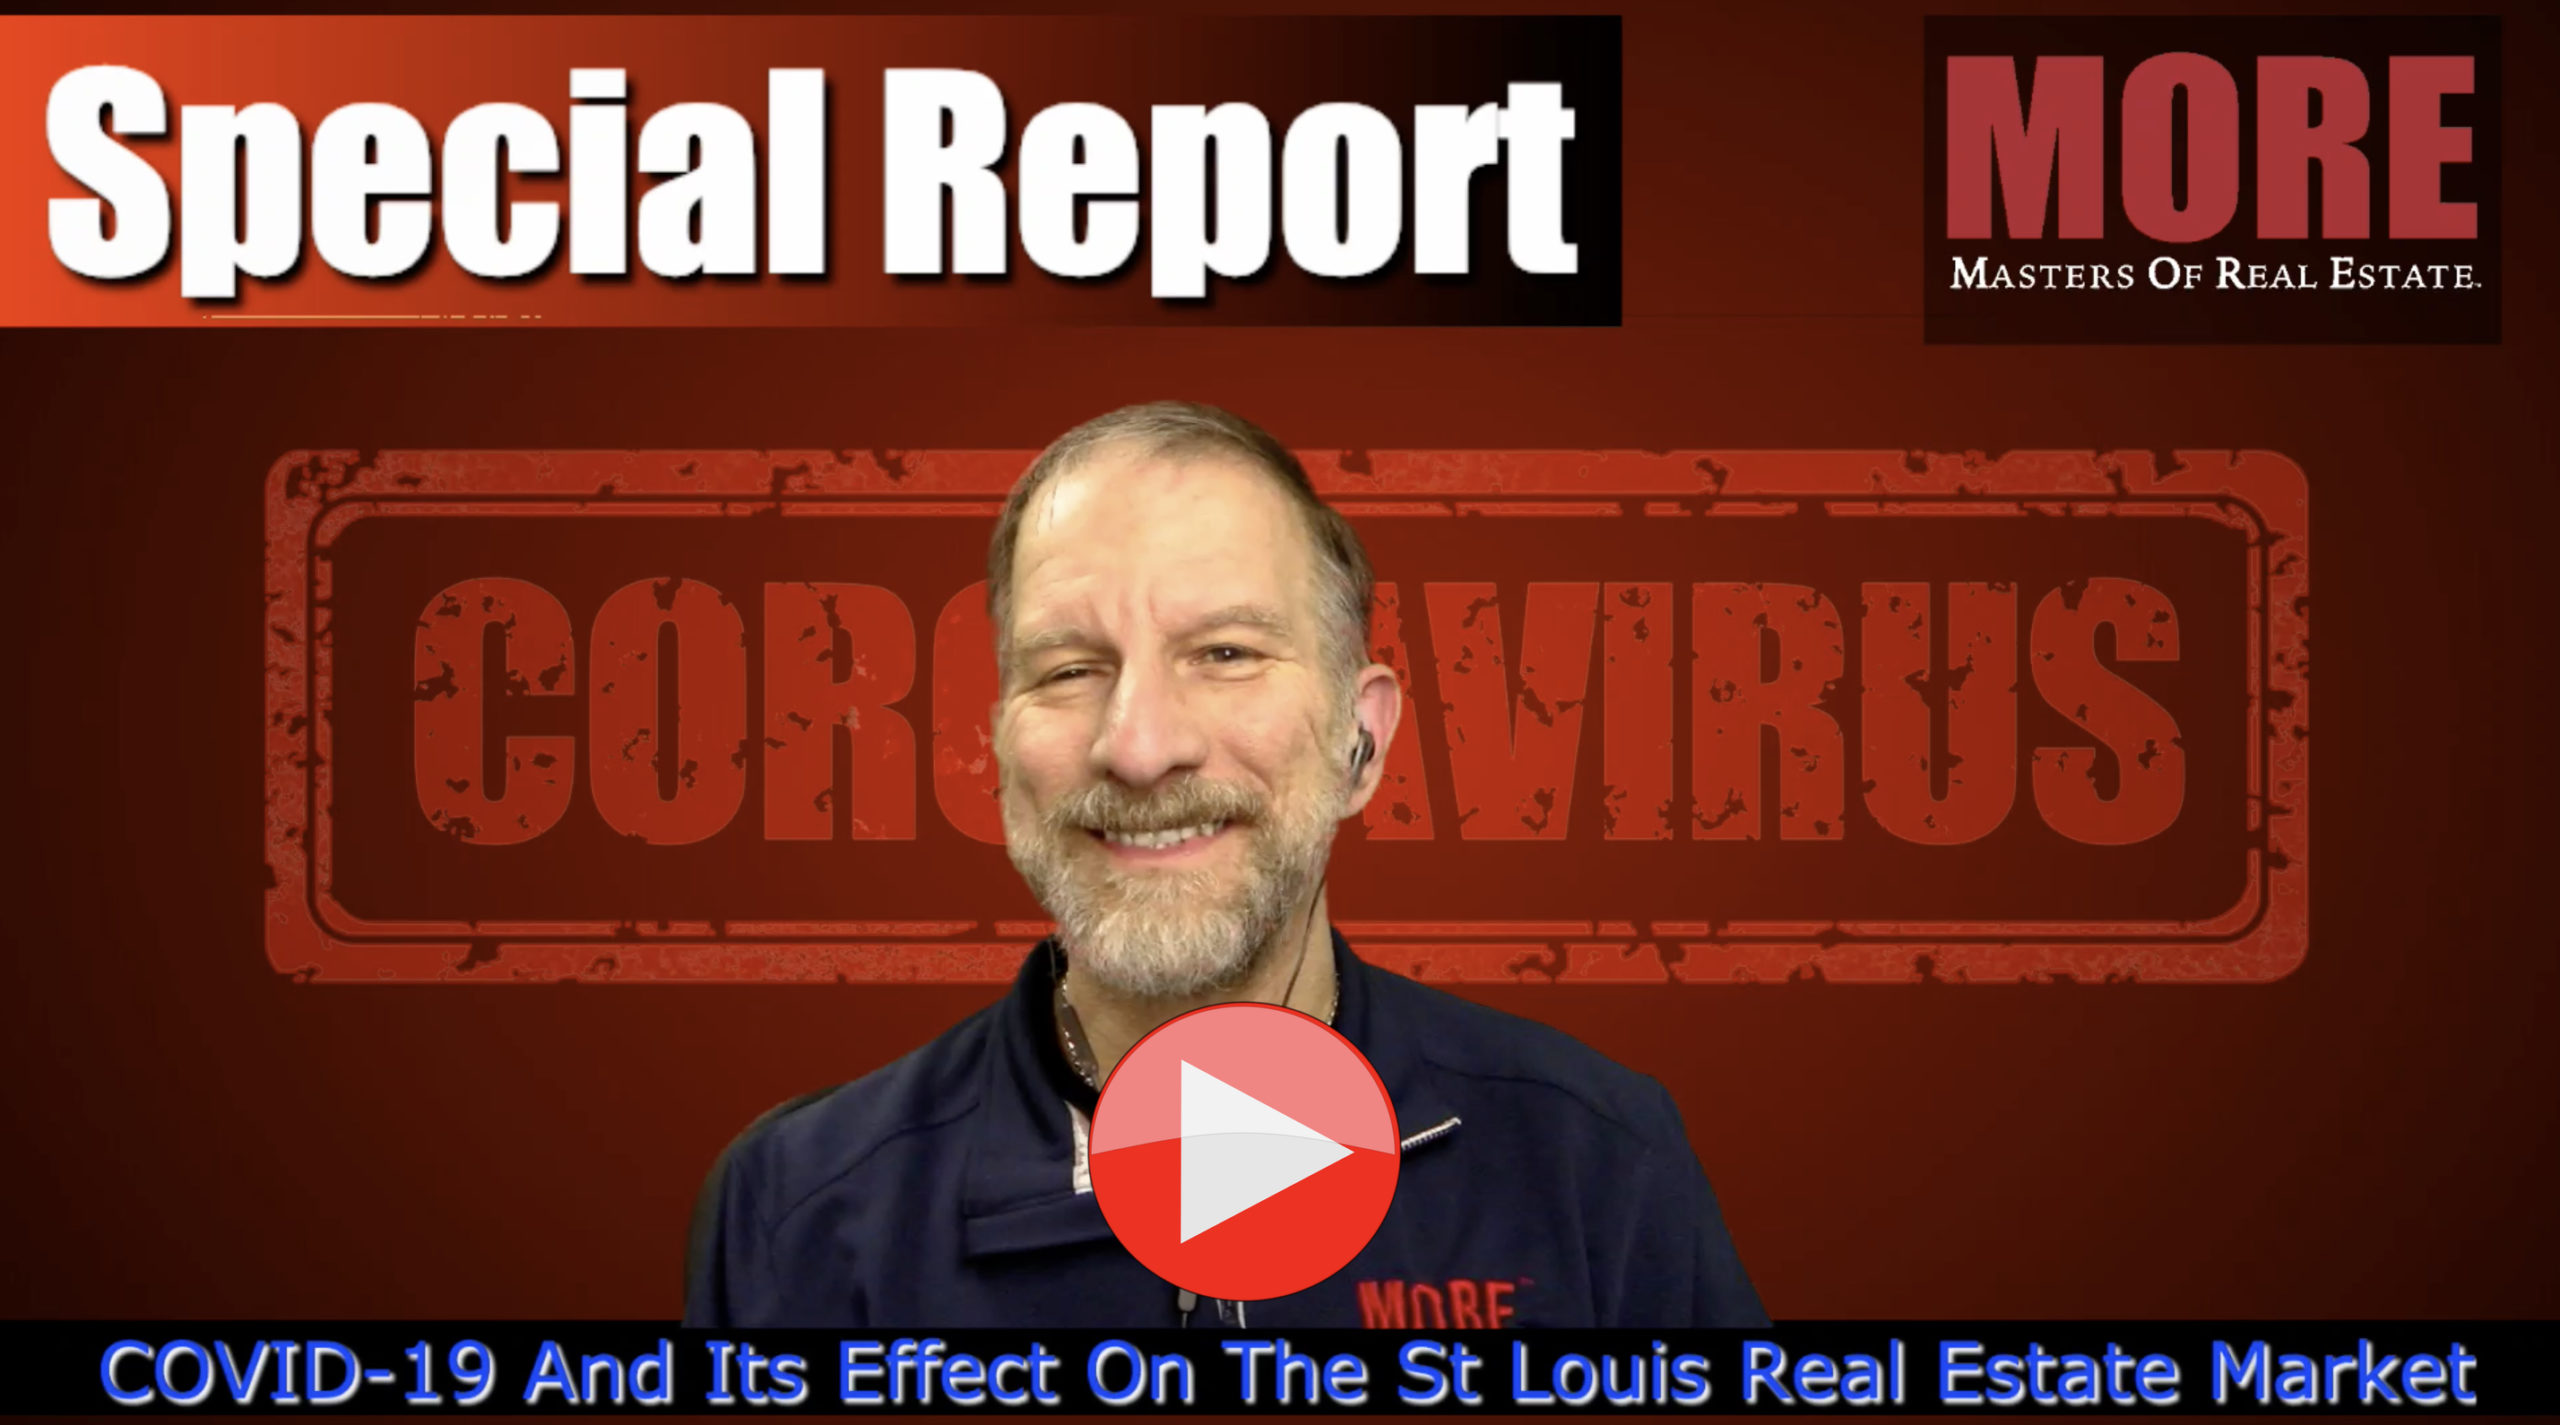 Special Report (Video) The Impact of Covid-19 (Coronavirus) on the St Louis Real Estate Market